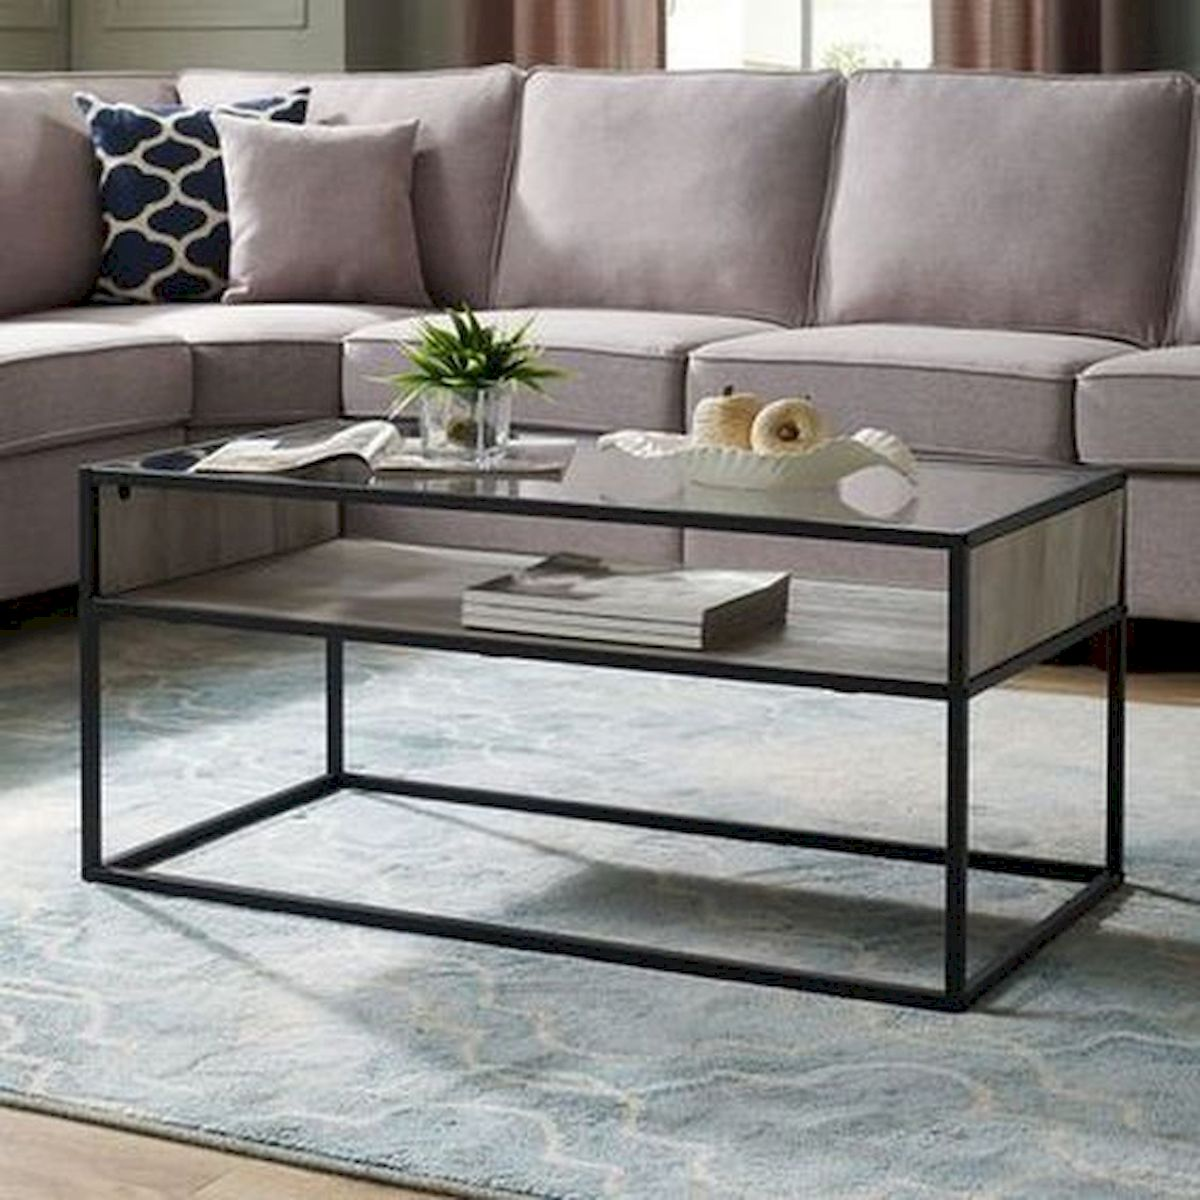 40 Awesome Modern Glass Coffee Table Design Ideas For Your